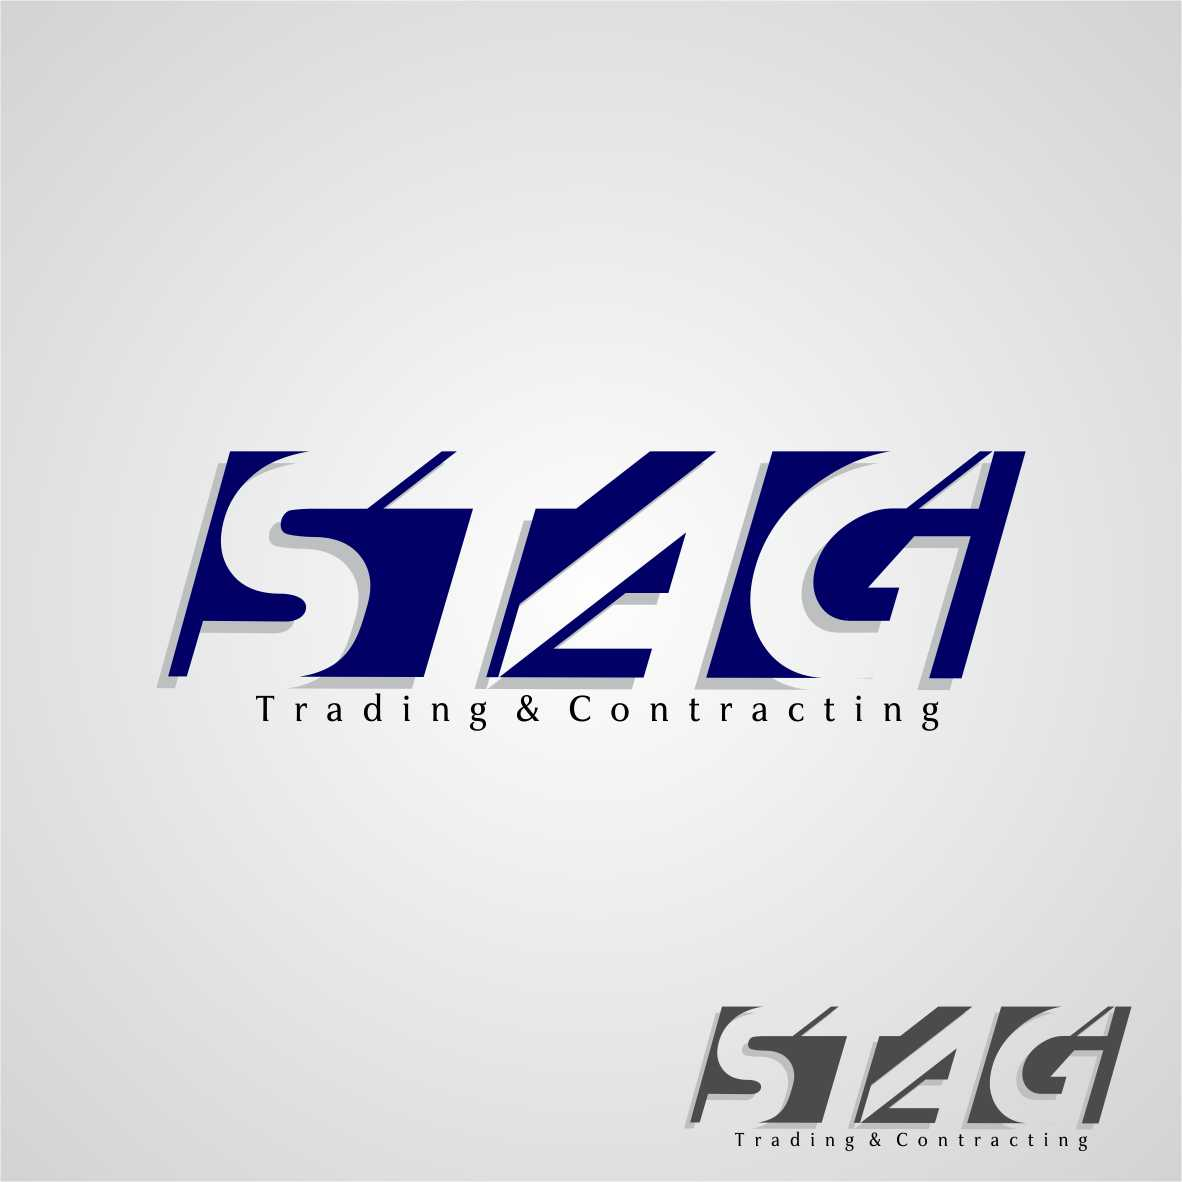 Logo Design by arteo_design - Entry No. 263 in the Logo Design Contest Captivating Logo Design for STAG Trading & Contracting.